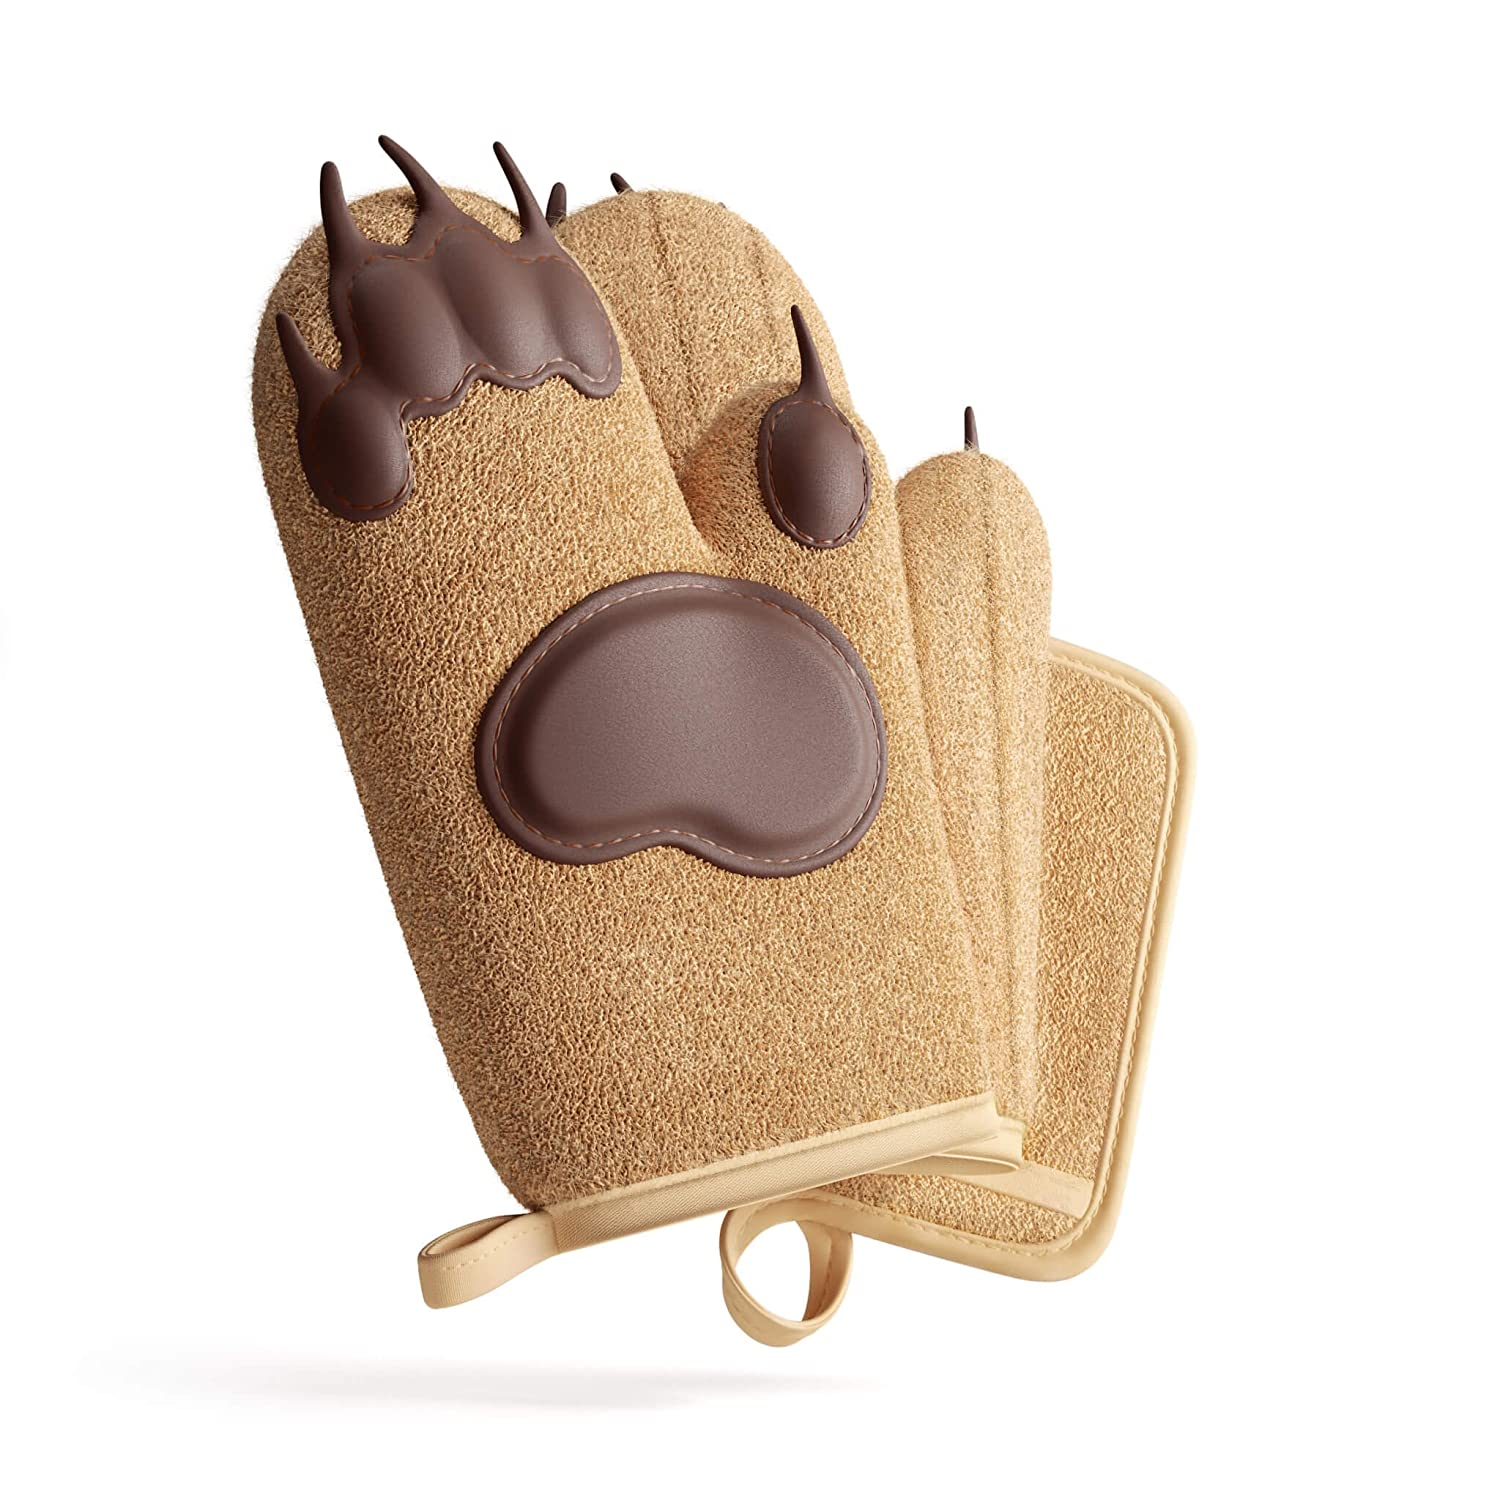 Heat Resistant Oven Mitts & Pot Holder Kitchen Set by Toem - Includes 2 Bear Paw Silicone Padded Oven Gloves, 1 Terry Cloth Pot Holder & Free Self Adhesive Hook